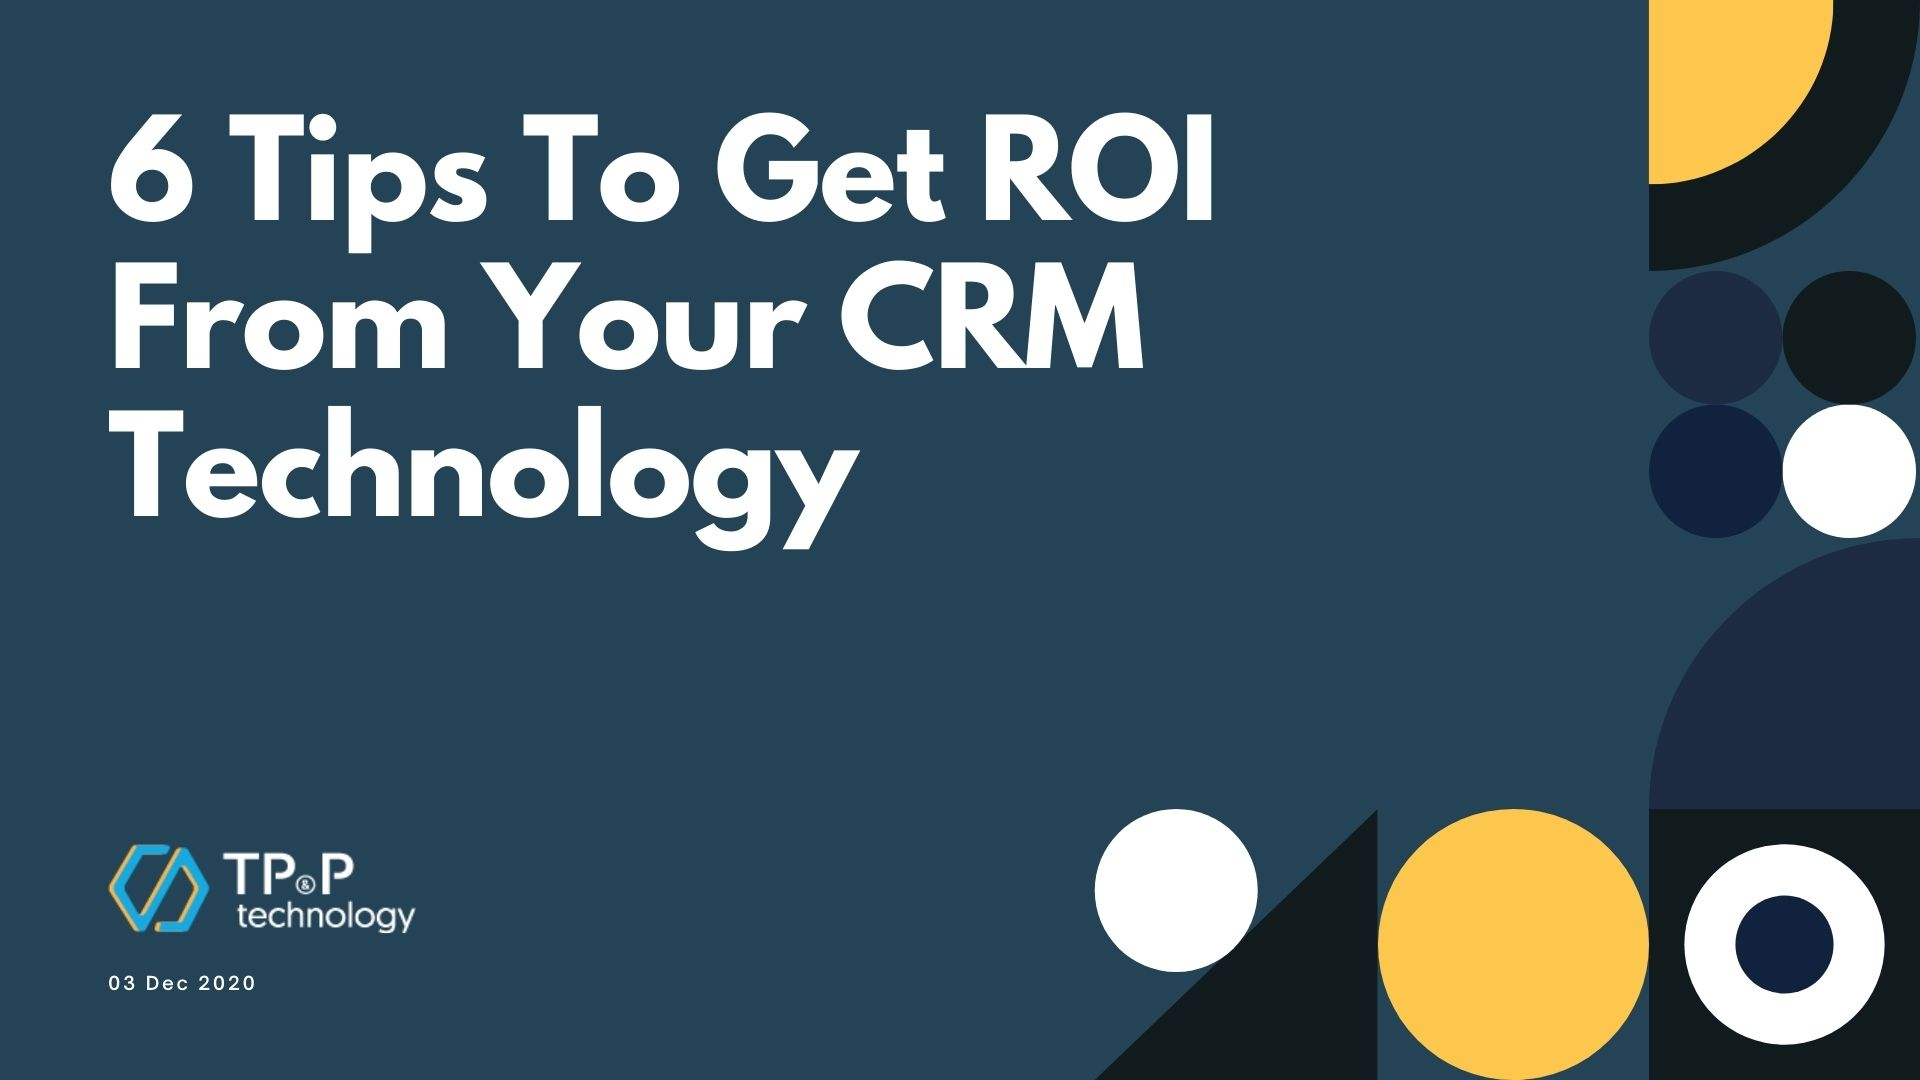 6 Tips To Get ROI From Your CRM Technology